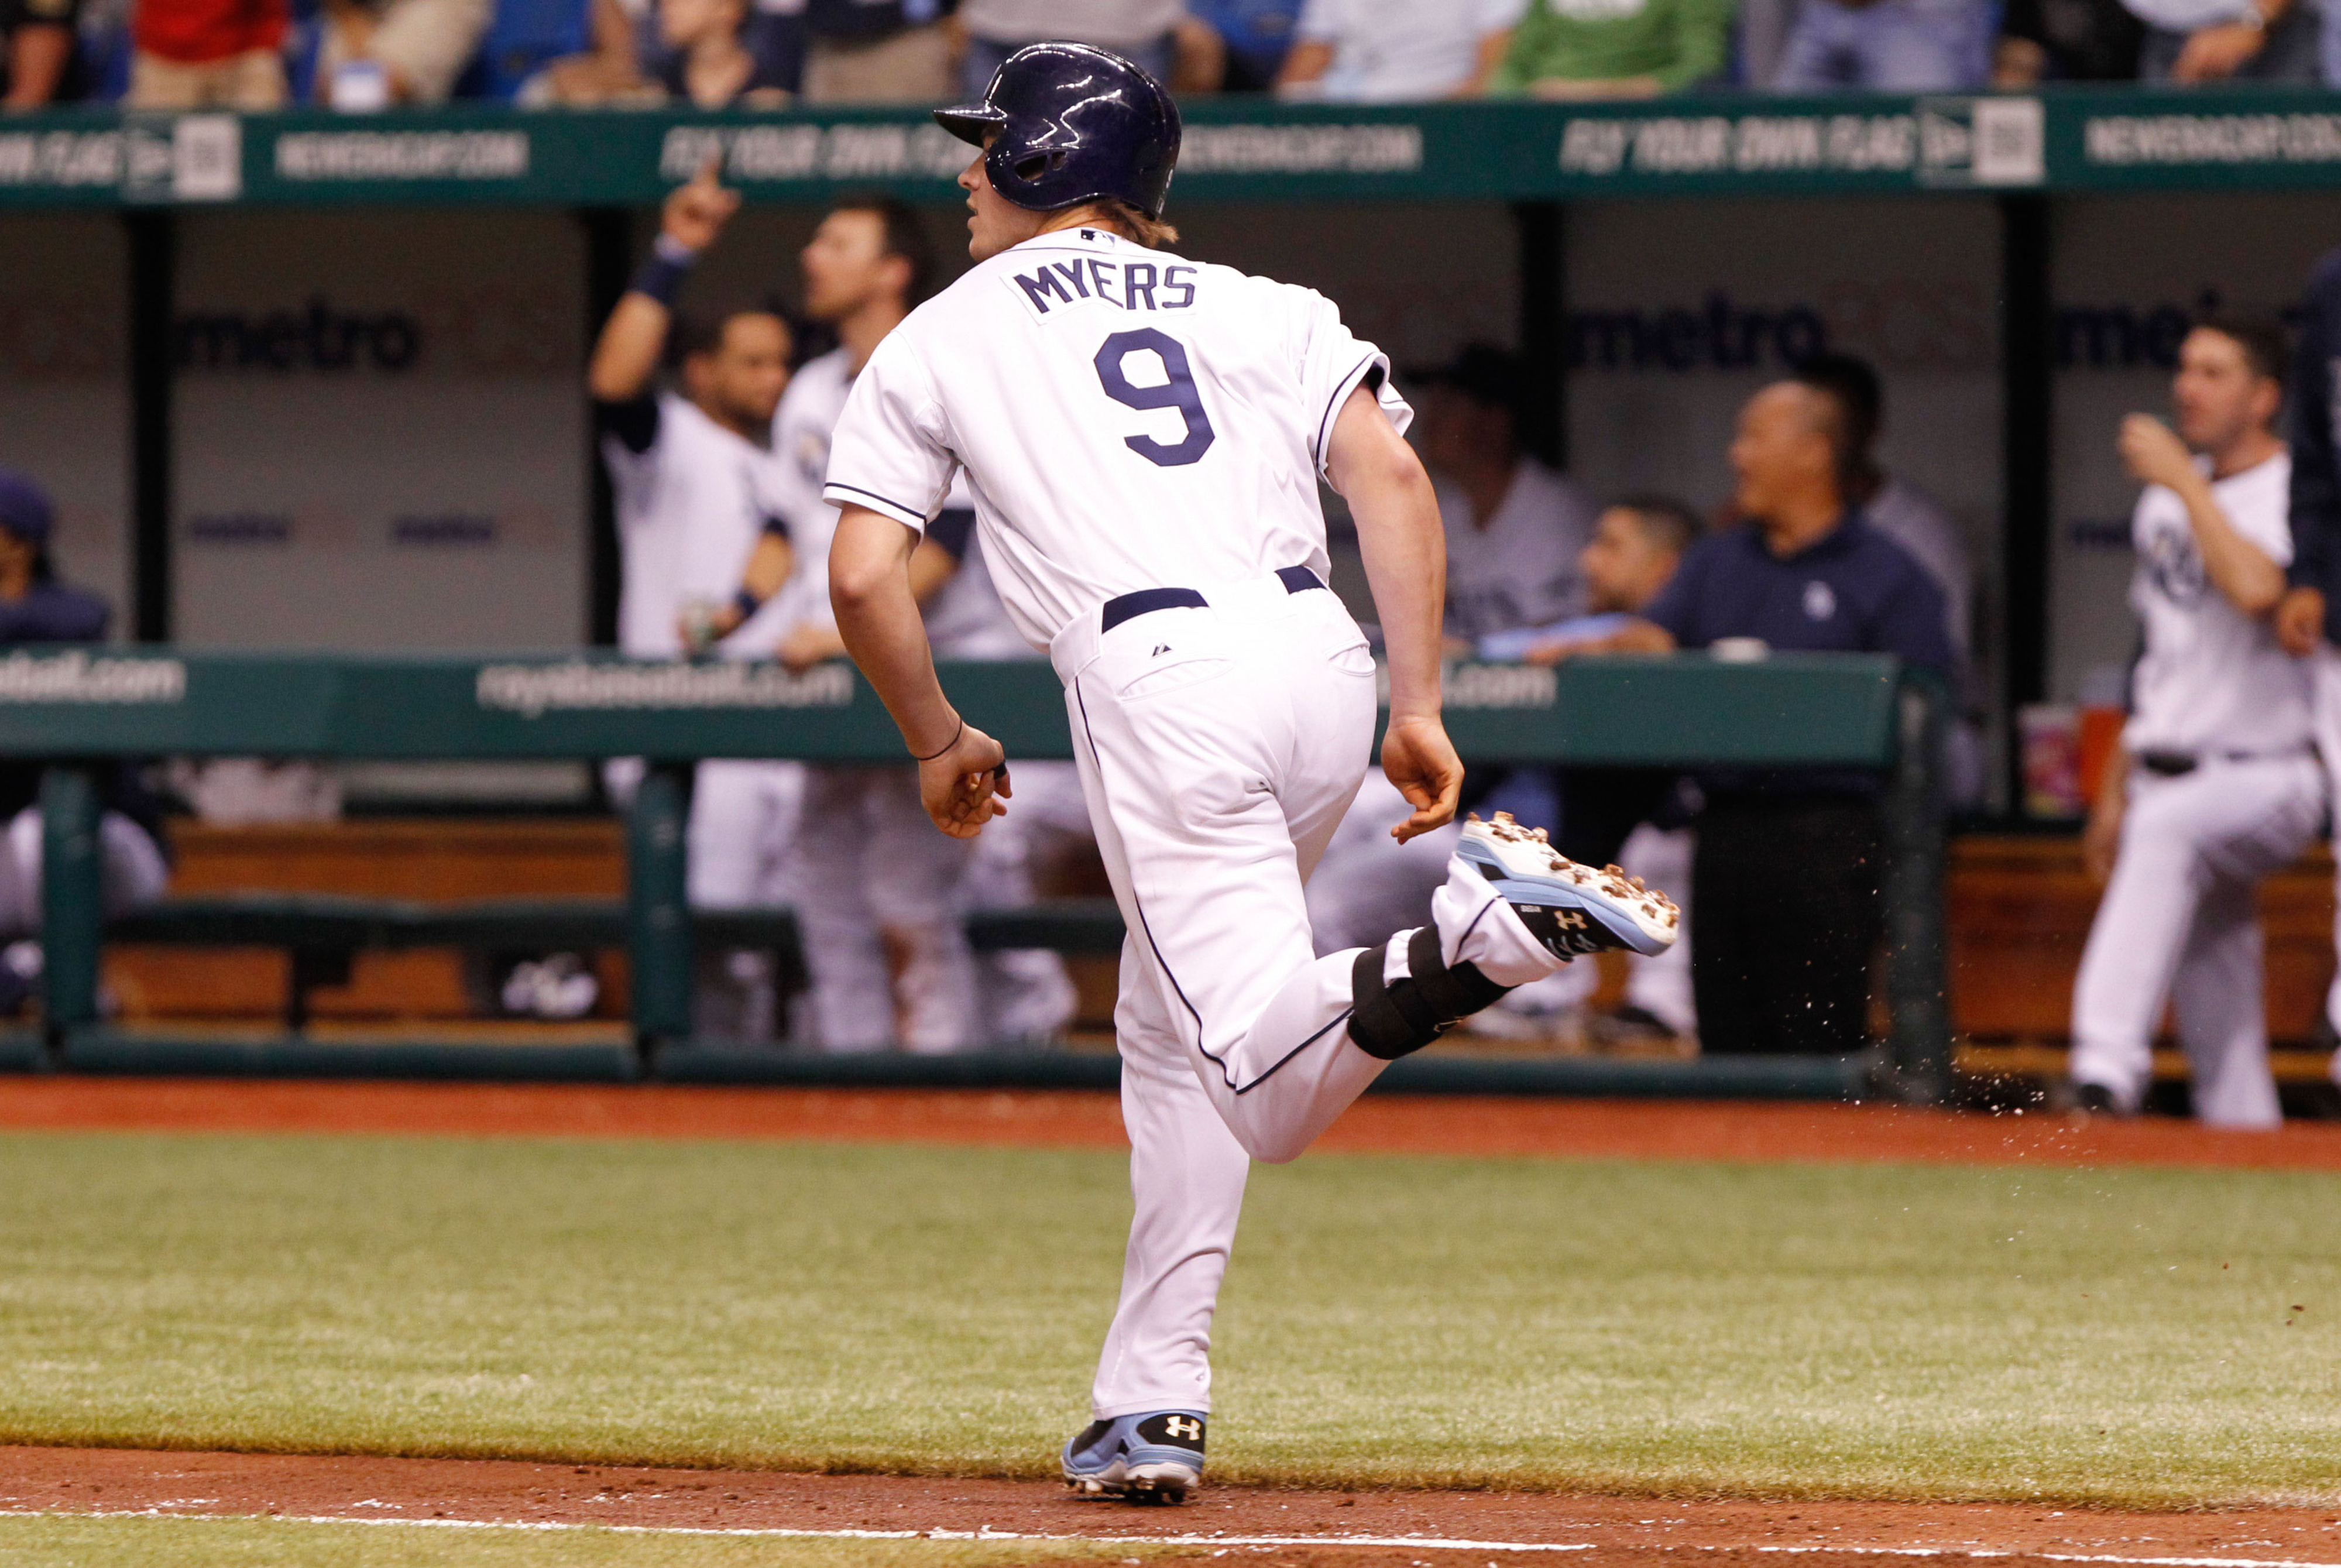 For the ladies... Wil Myers topped an okay crop of right fielders in the organization.